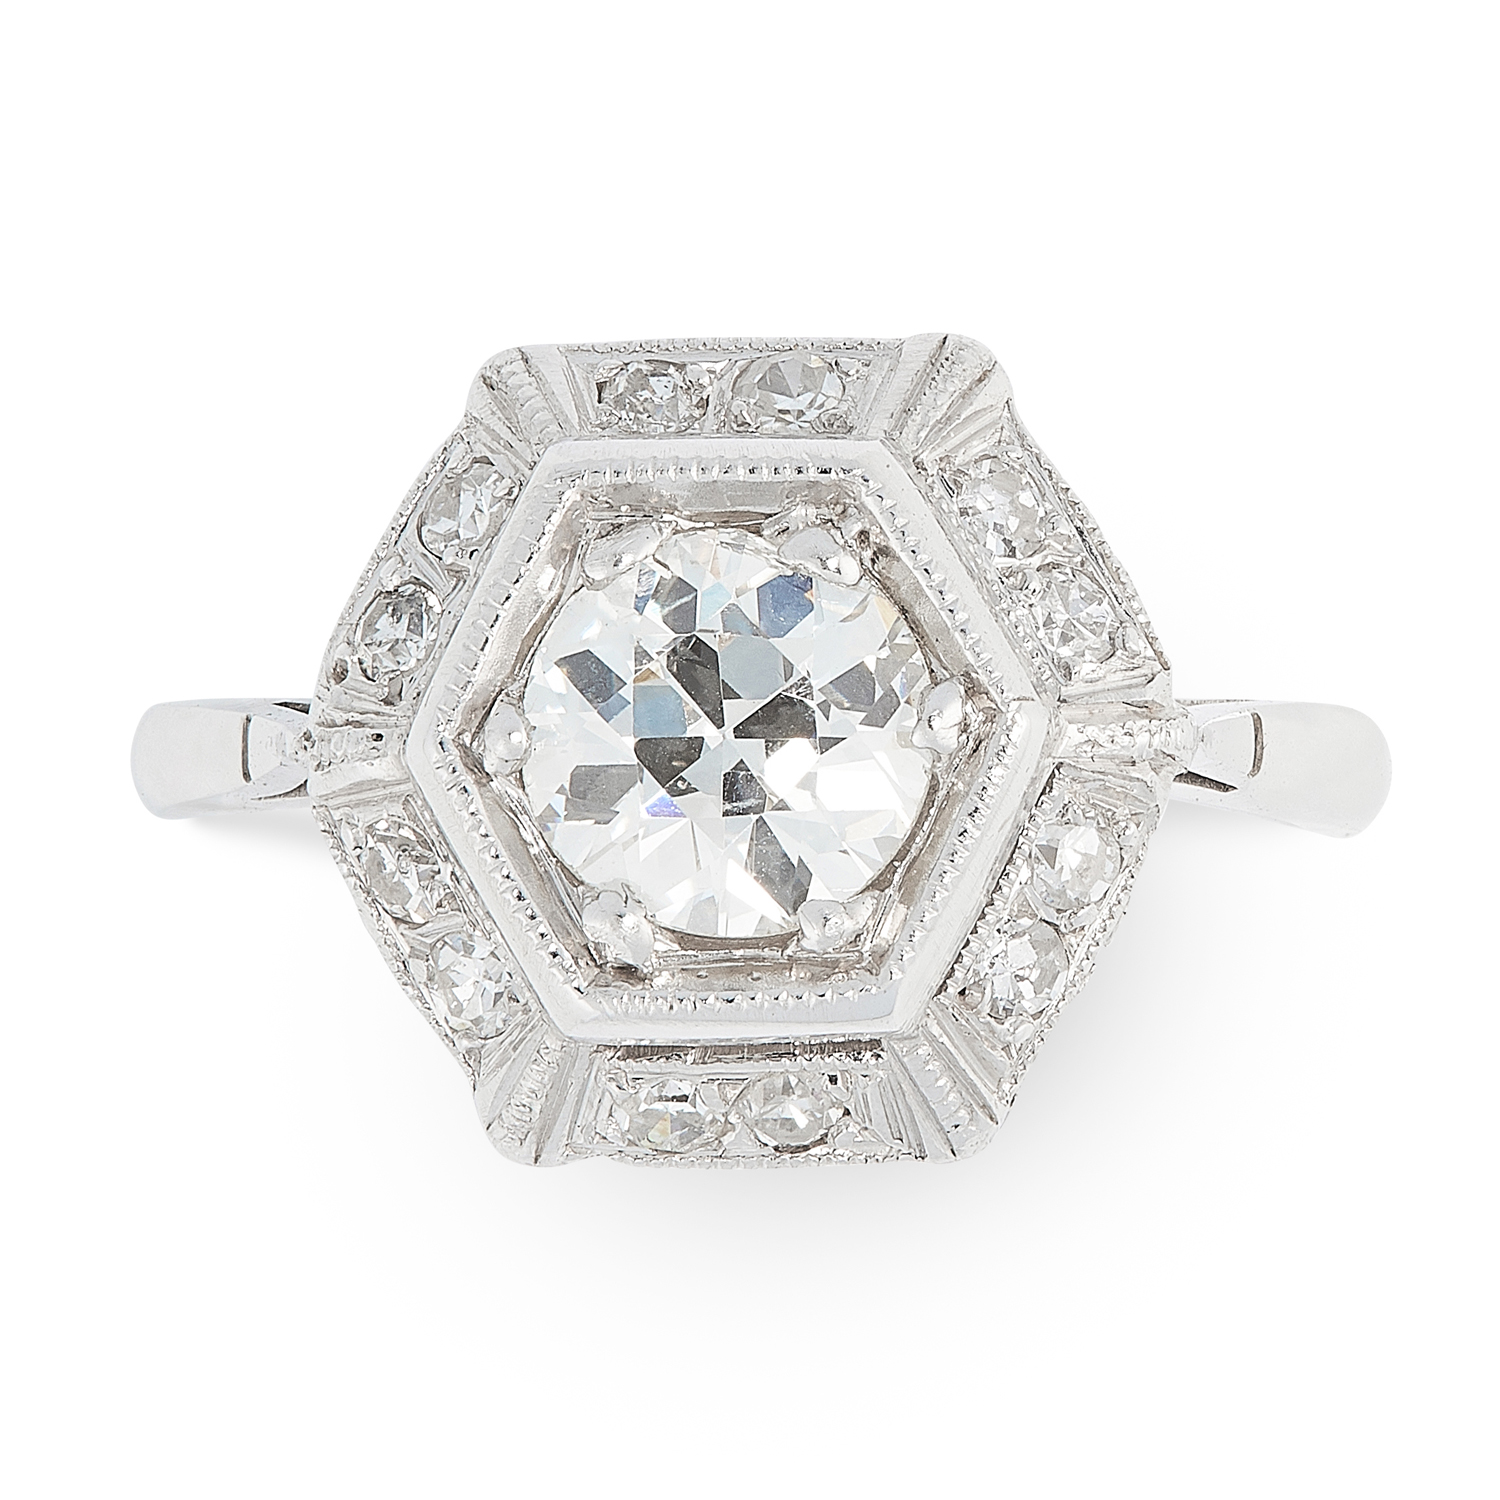 AN ART DECO DIAMOND DRESS RING, EARLY 20TH CENTURY set with a transitional cut diamond of 0.82